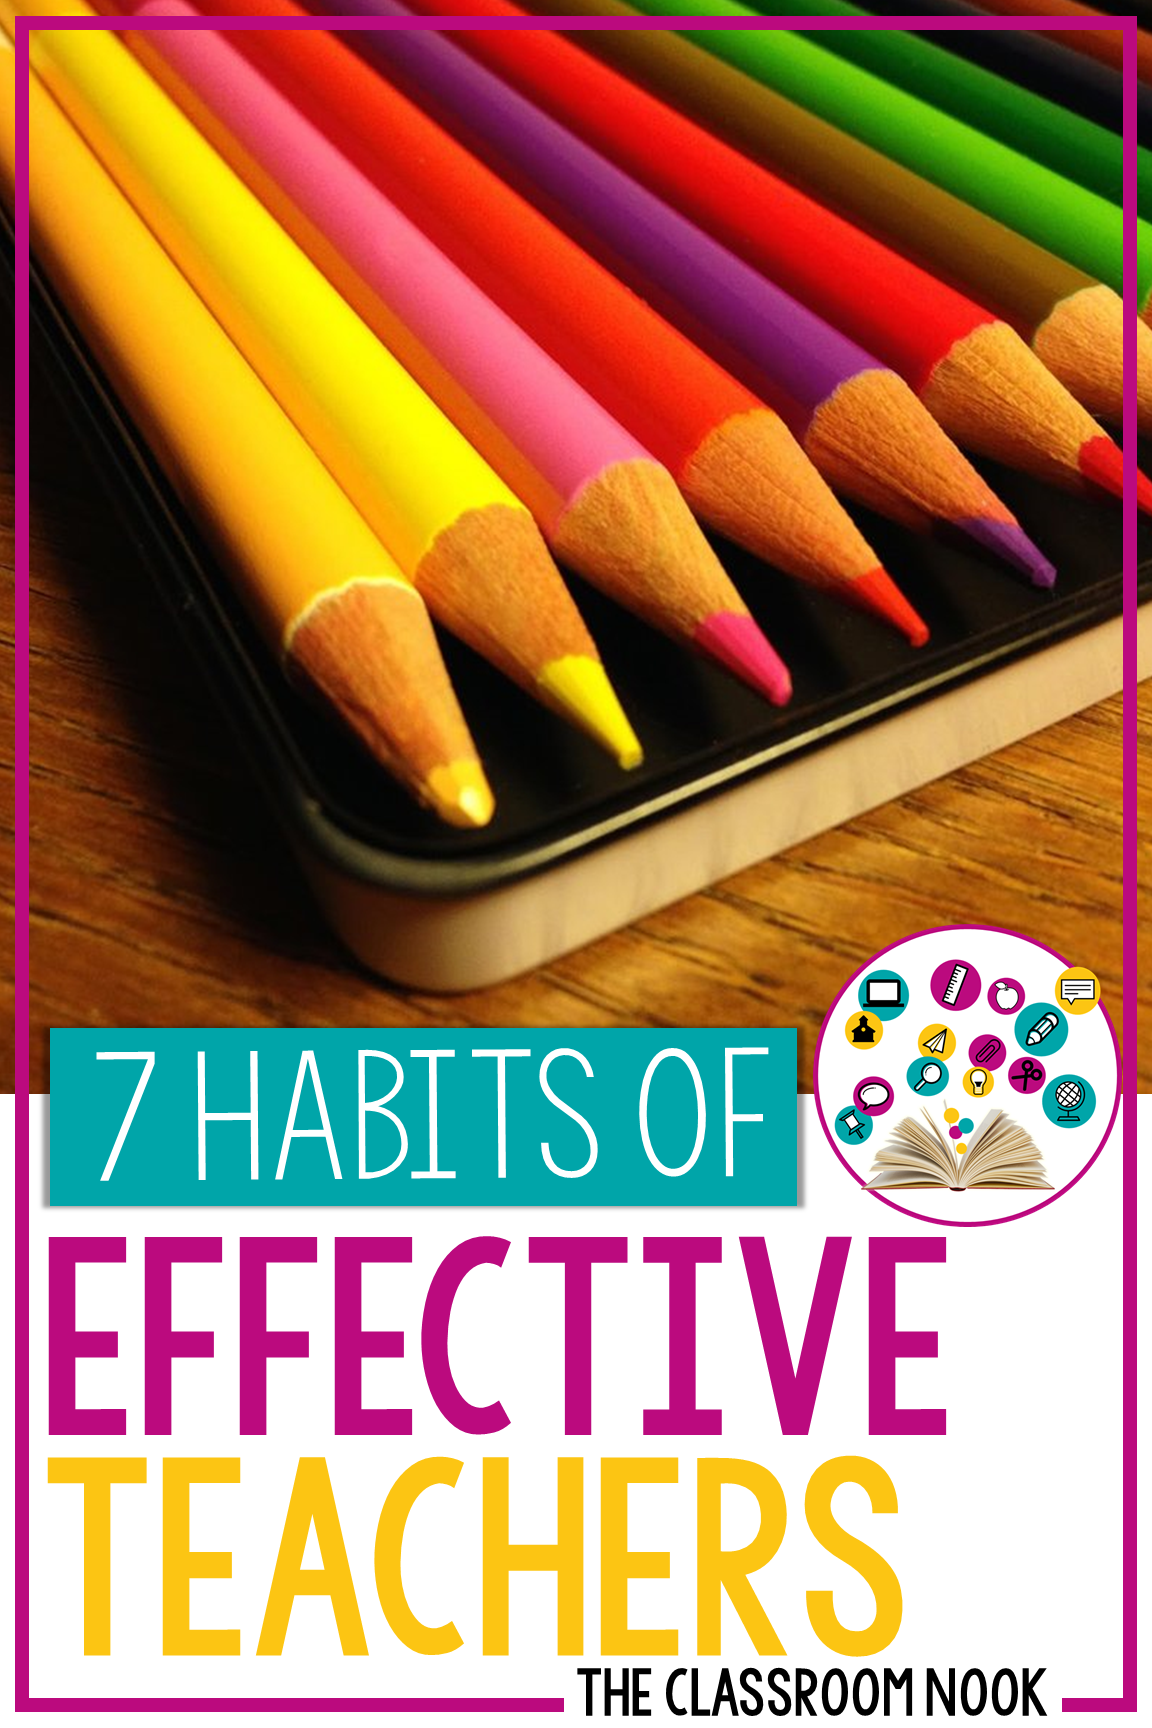 Our teaching habits can often determine how effective we are with our students. Want to know what makes your teaching the most effective? Check out these 7 habits of effective teachers #teacher #teaching